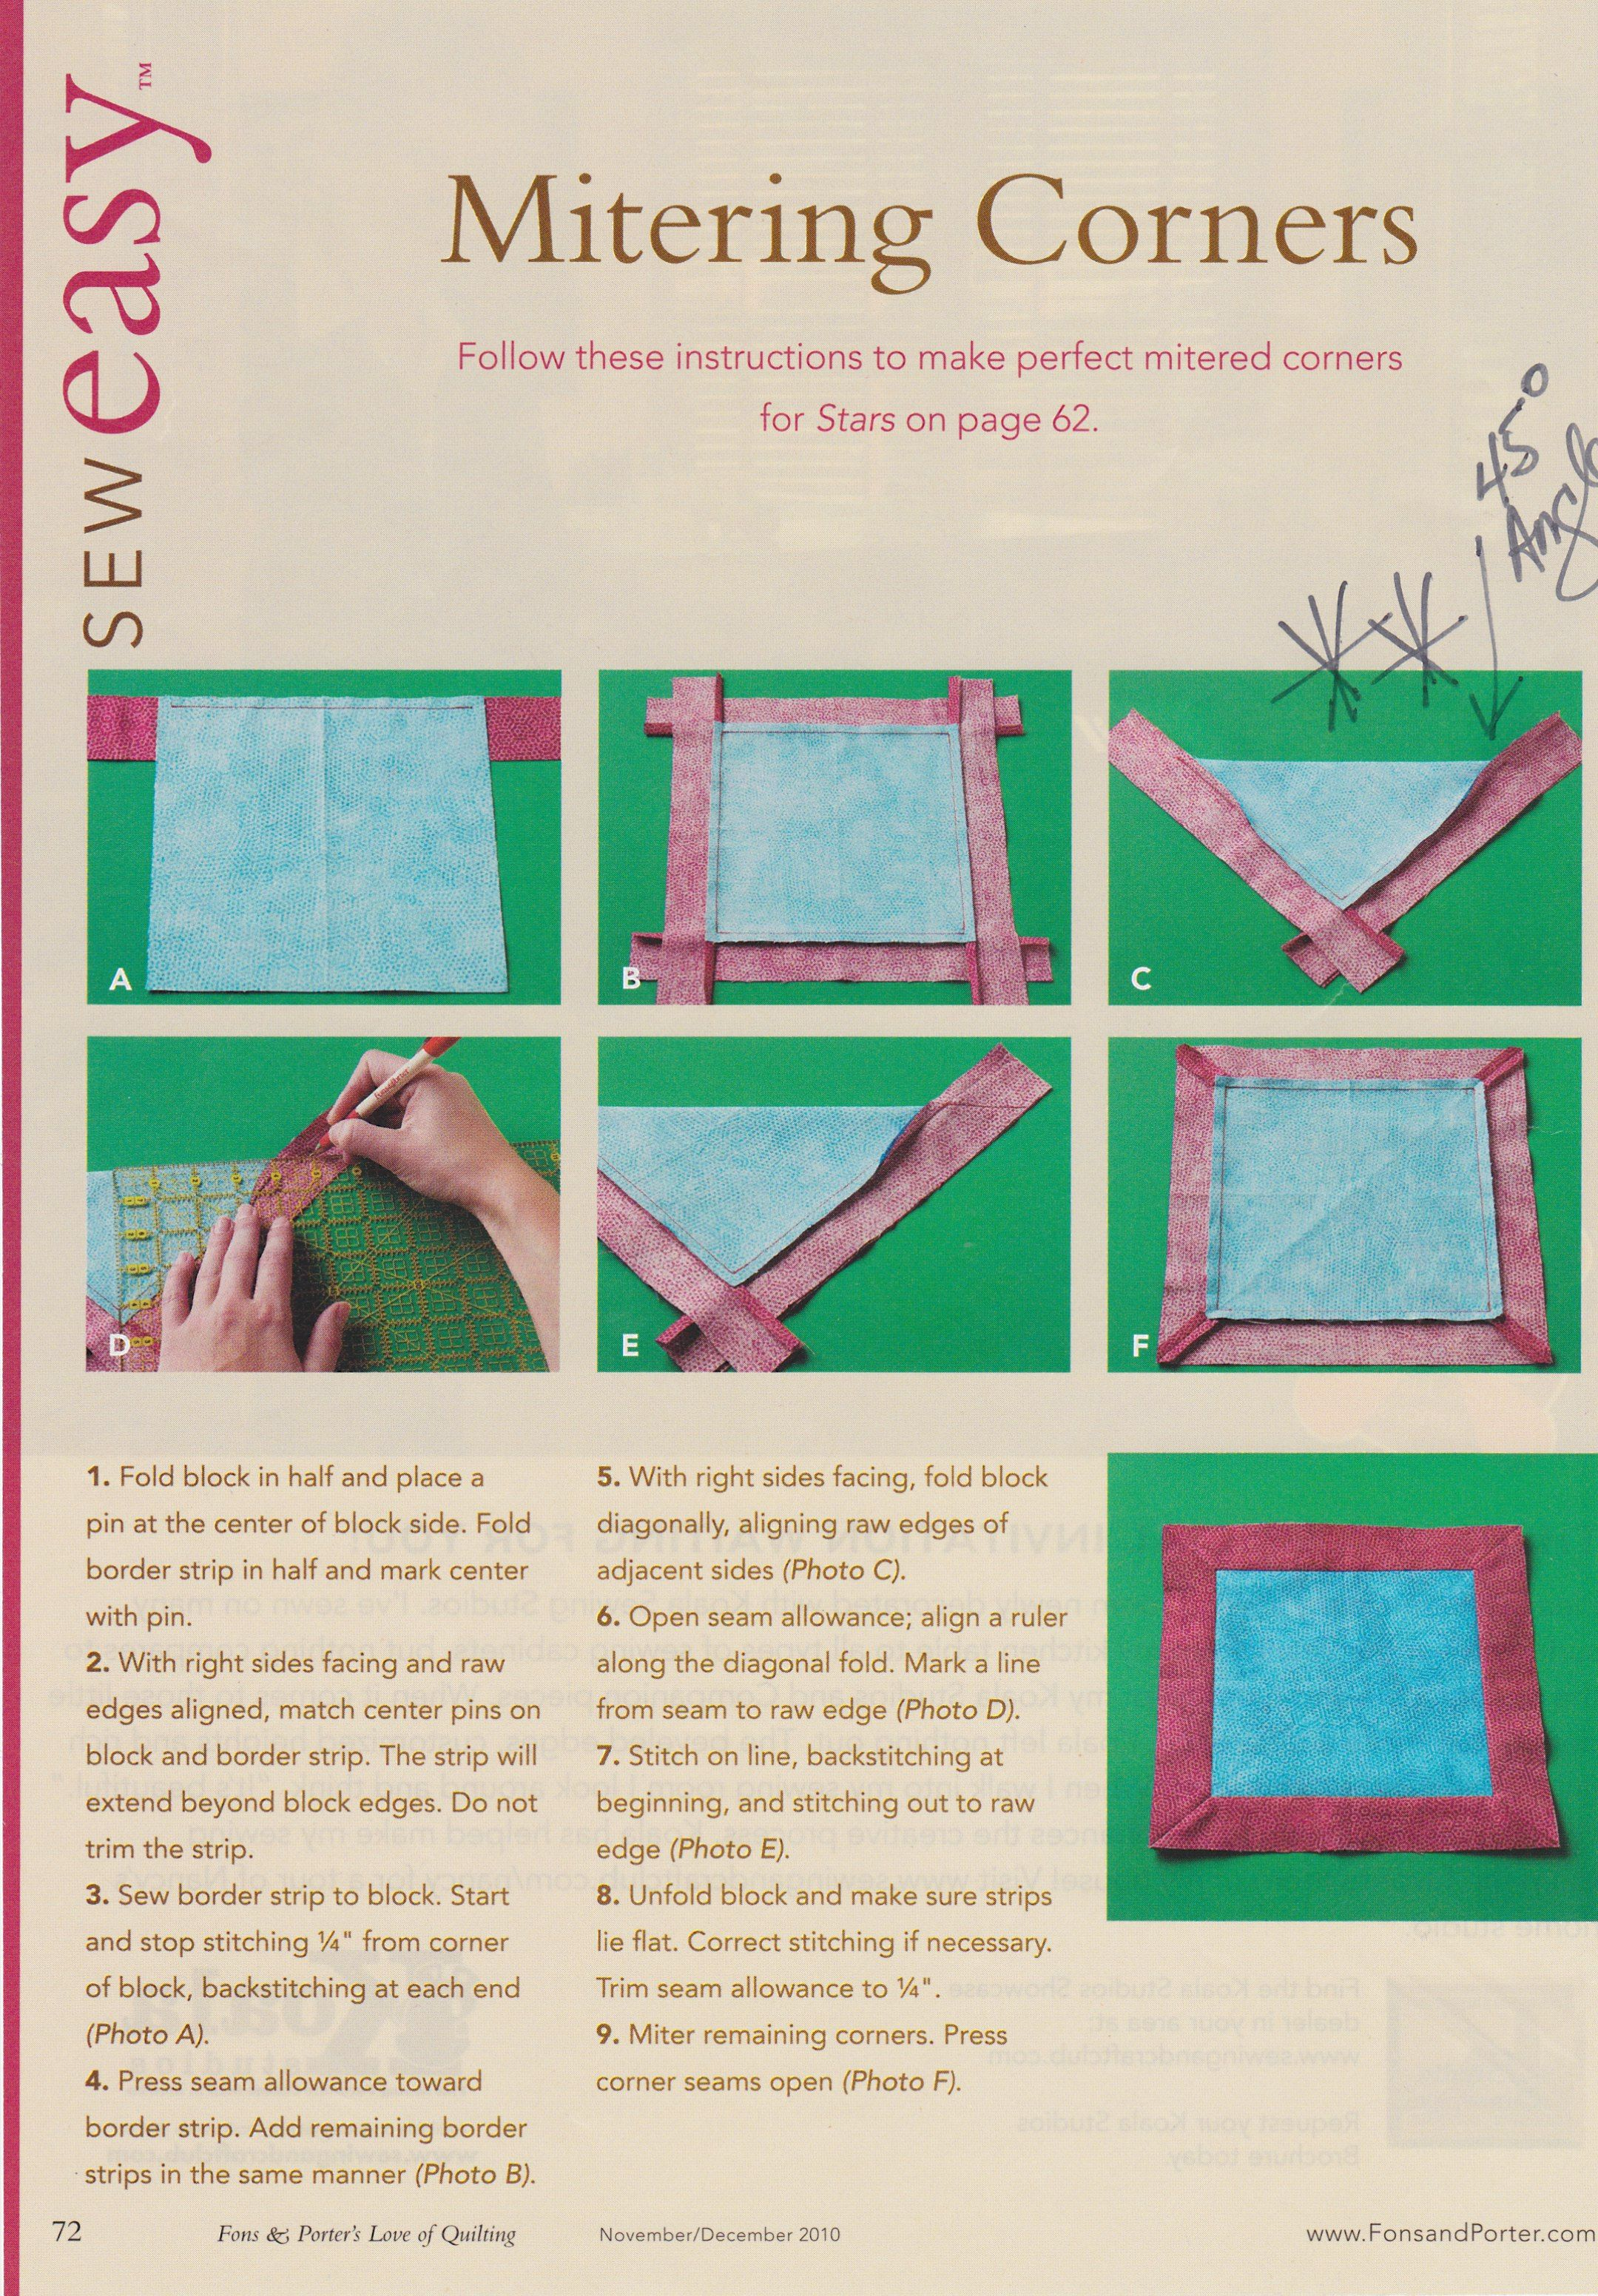 Help Mitered Corners For Borders Sewing Mitered Corners Sewing Hacks Sewing Fabric